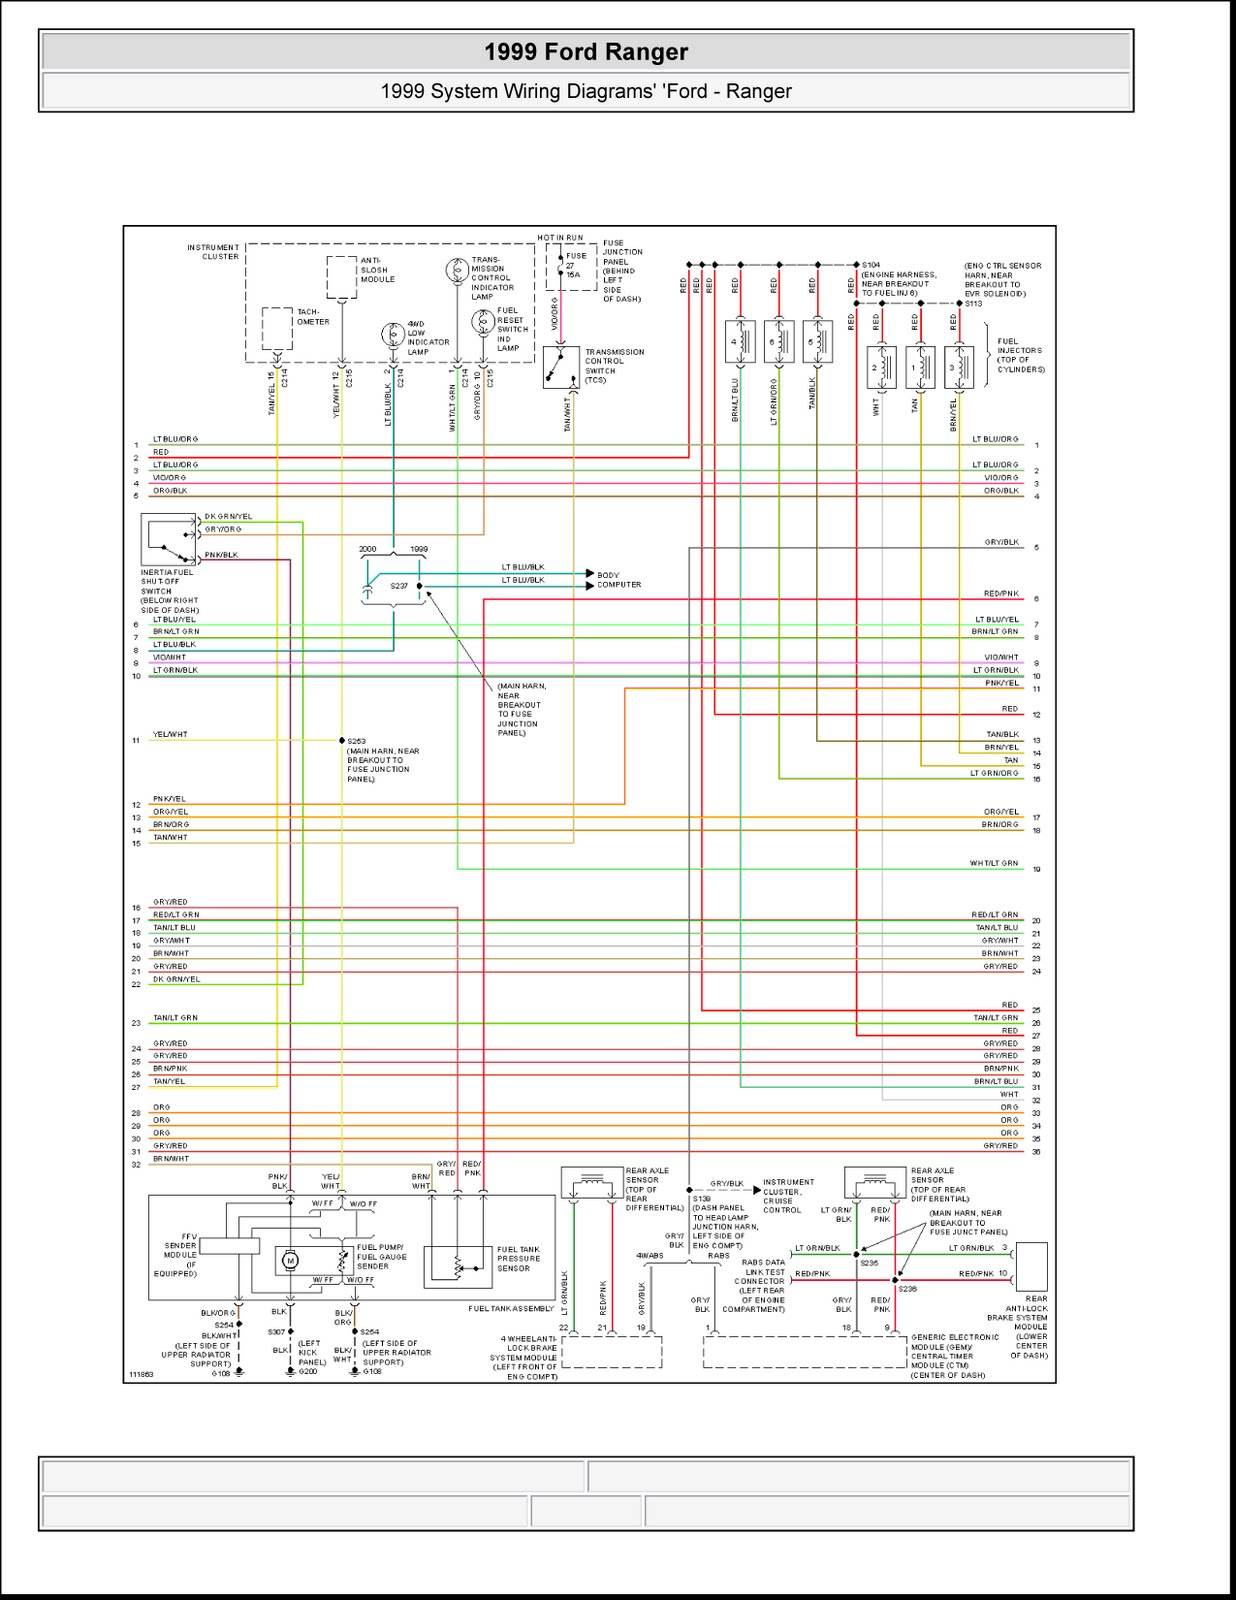 0003 1999 ford ranger system wiring diagrams 4 images wiring 1999 ford ranger ignition wiring diagram at webbmarketing.co